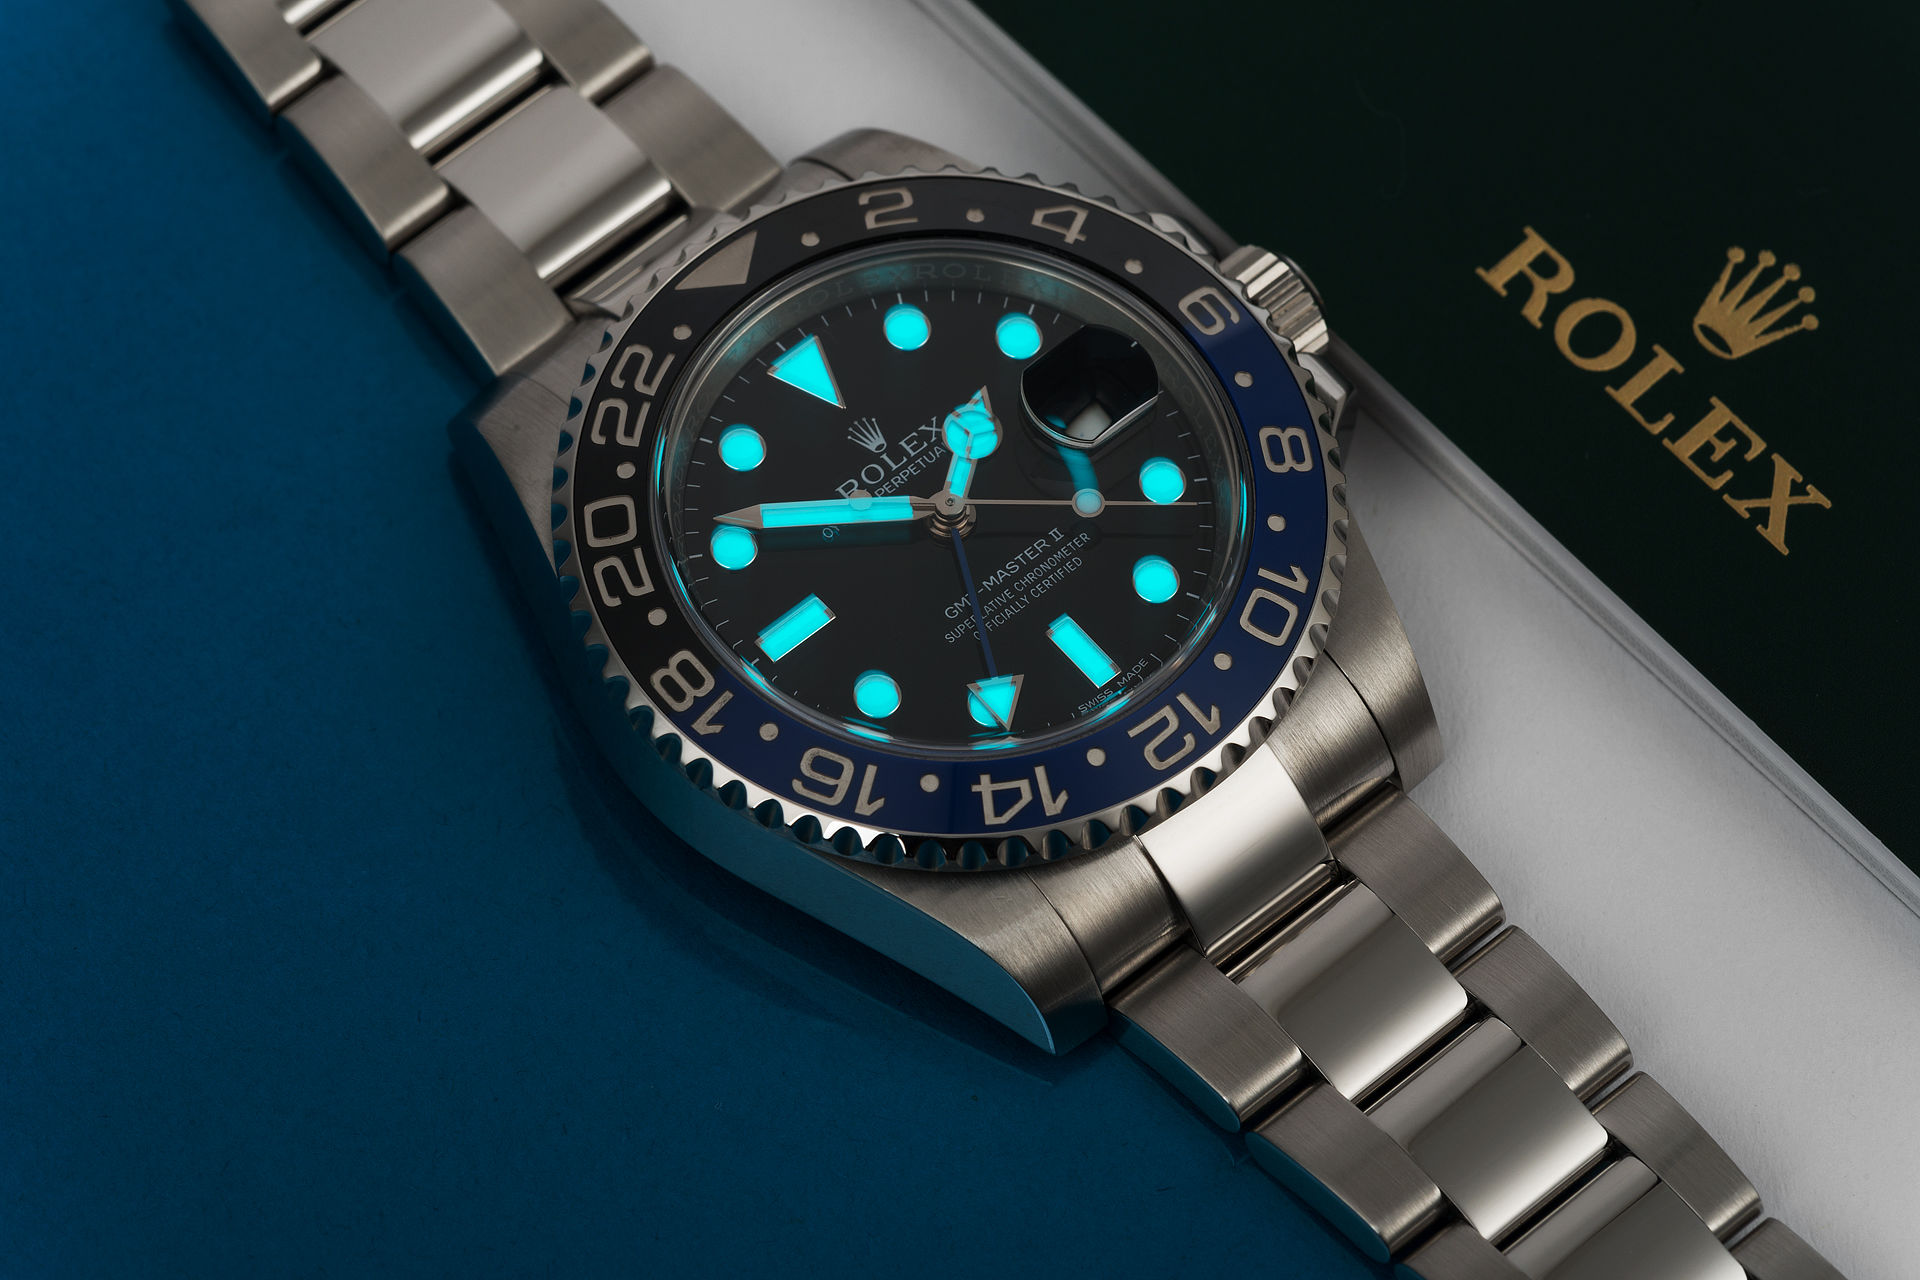 ref 116710BLNR | Perfect Full Set  | Rolex GMT-Master II